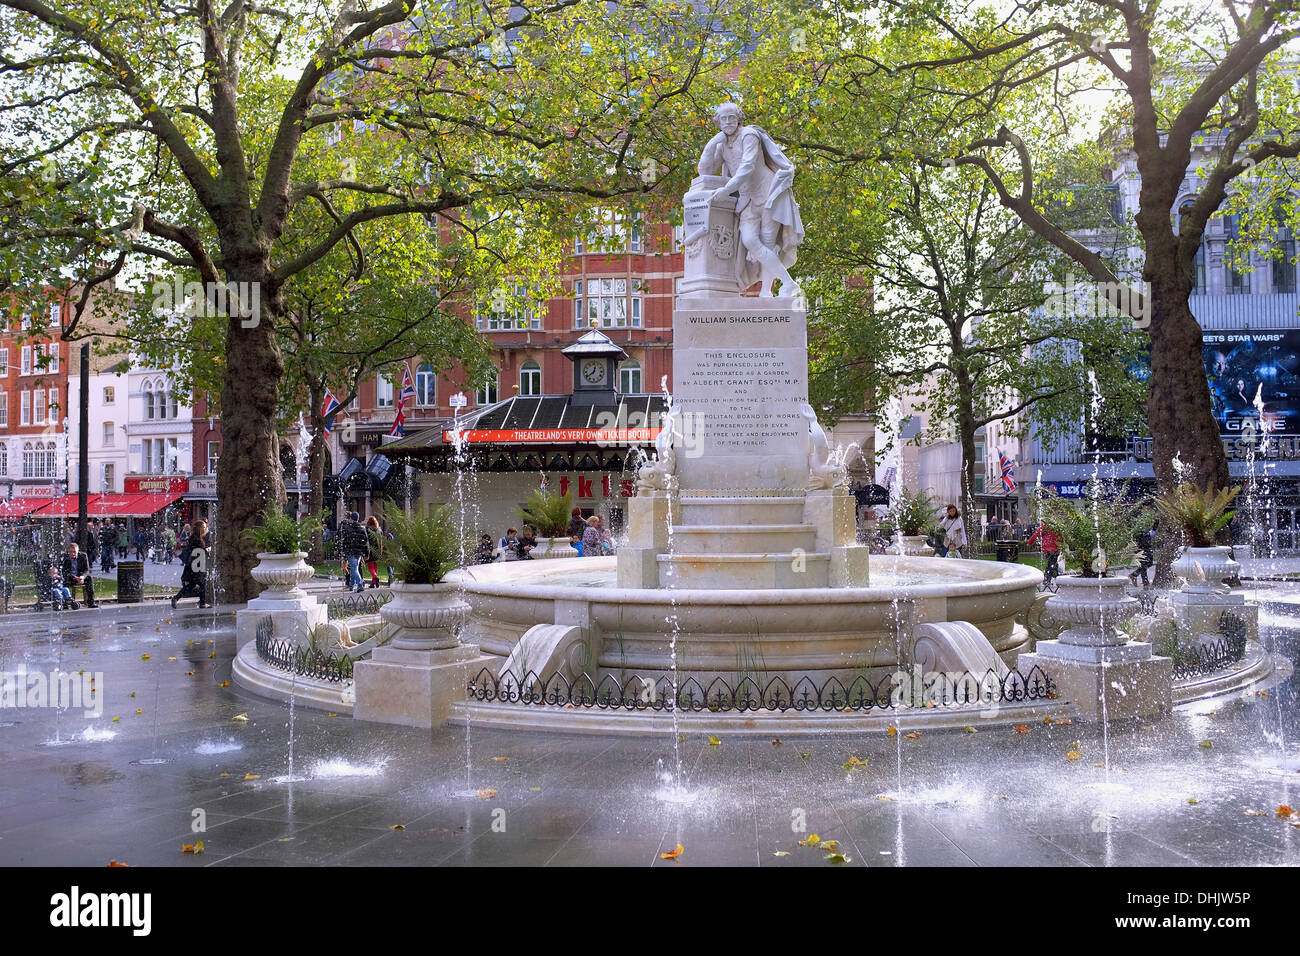 Marble fountain in Leicester Square Gardens with statue of William Shakespeare, London UK - Stock Image